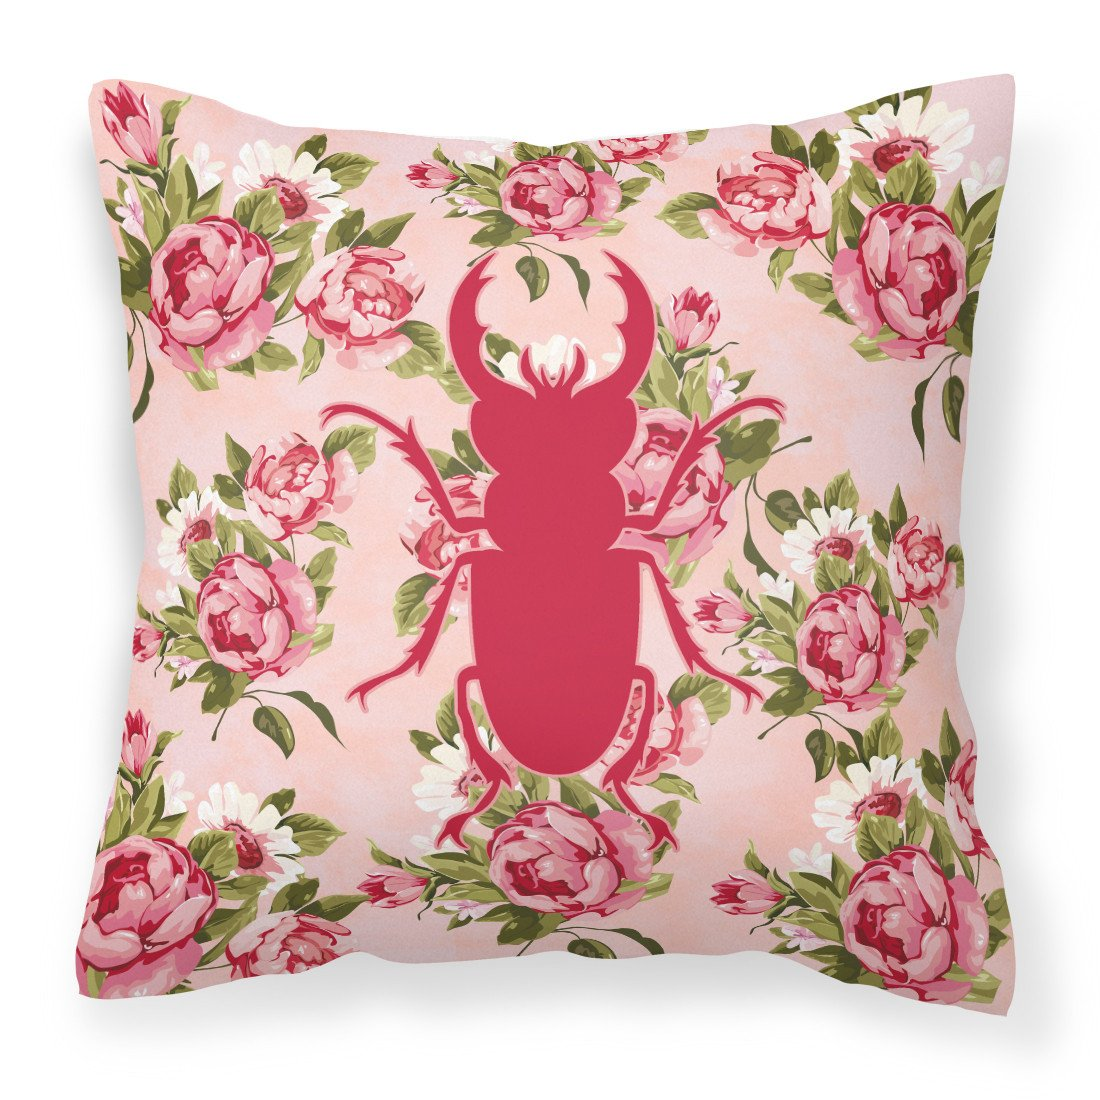 Beetle Shabby Chic Pink Roses  Fabric Decorative Pillow BB1063-RS-PK-PW1414 - the-store.com